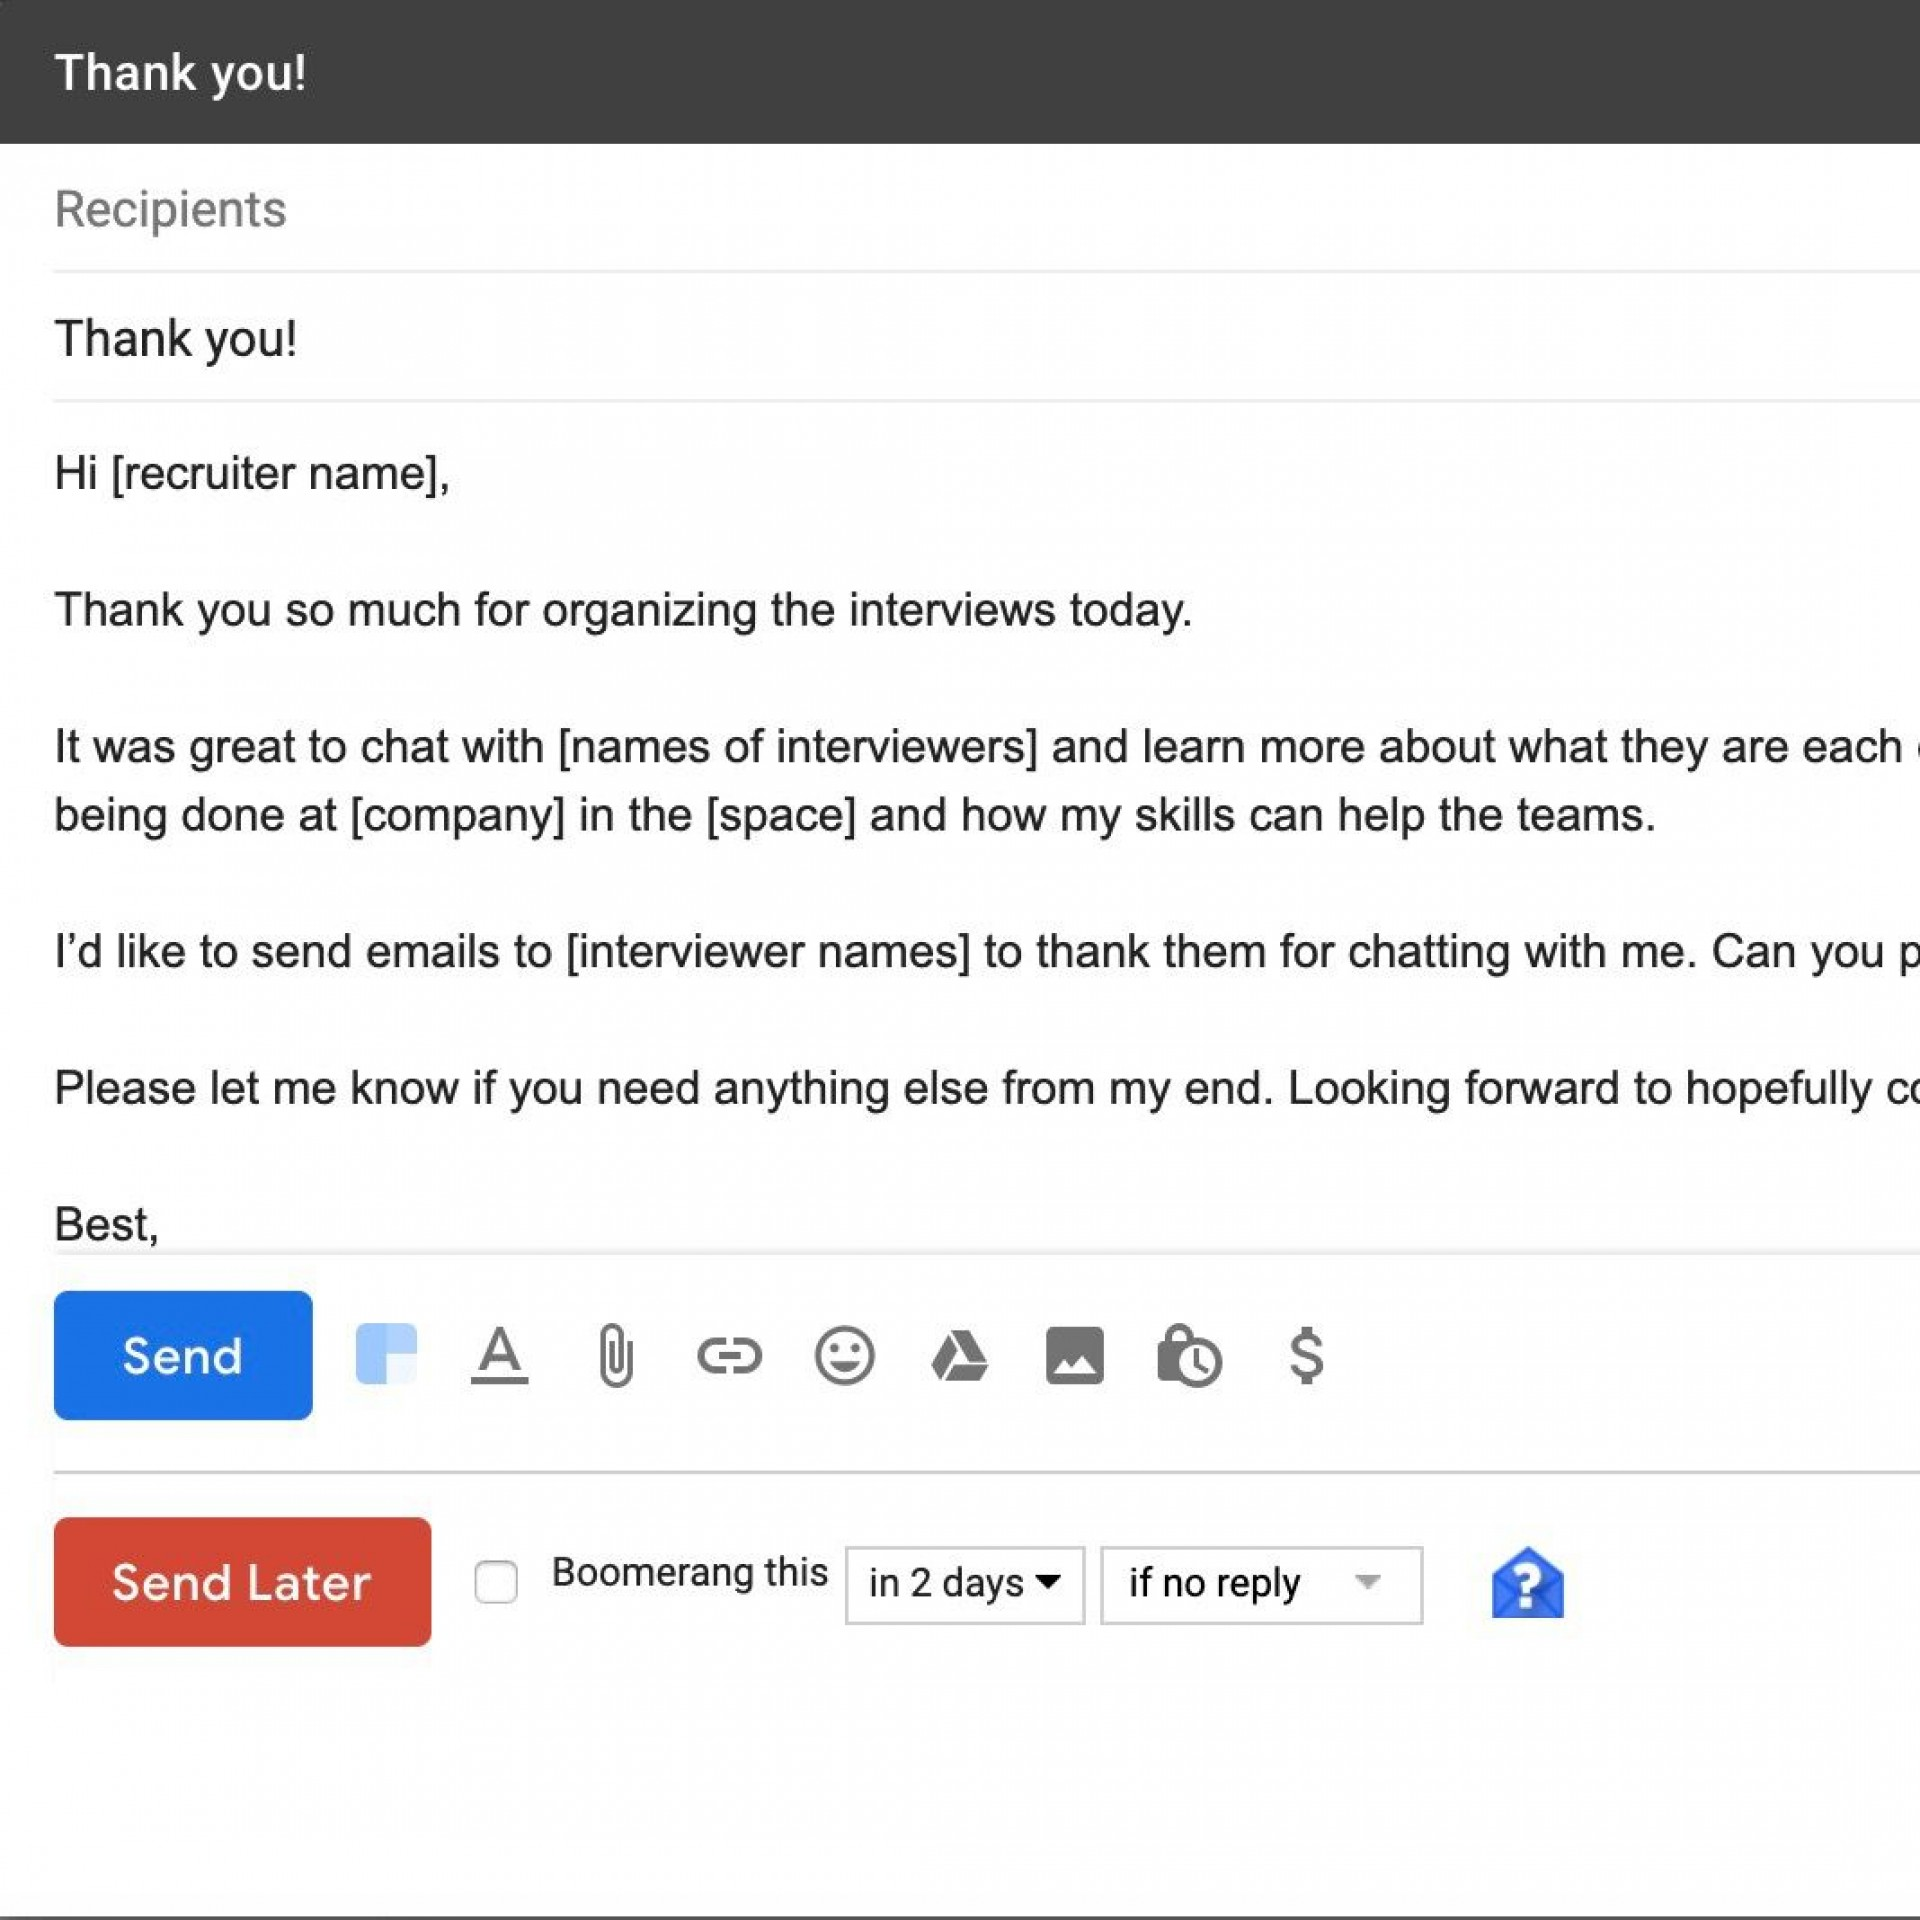 009 Phenomenal Follow Up Email Template Job Application High Resolution  After For1920